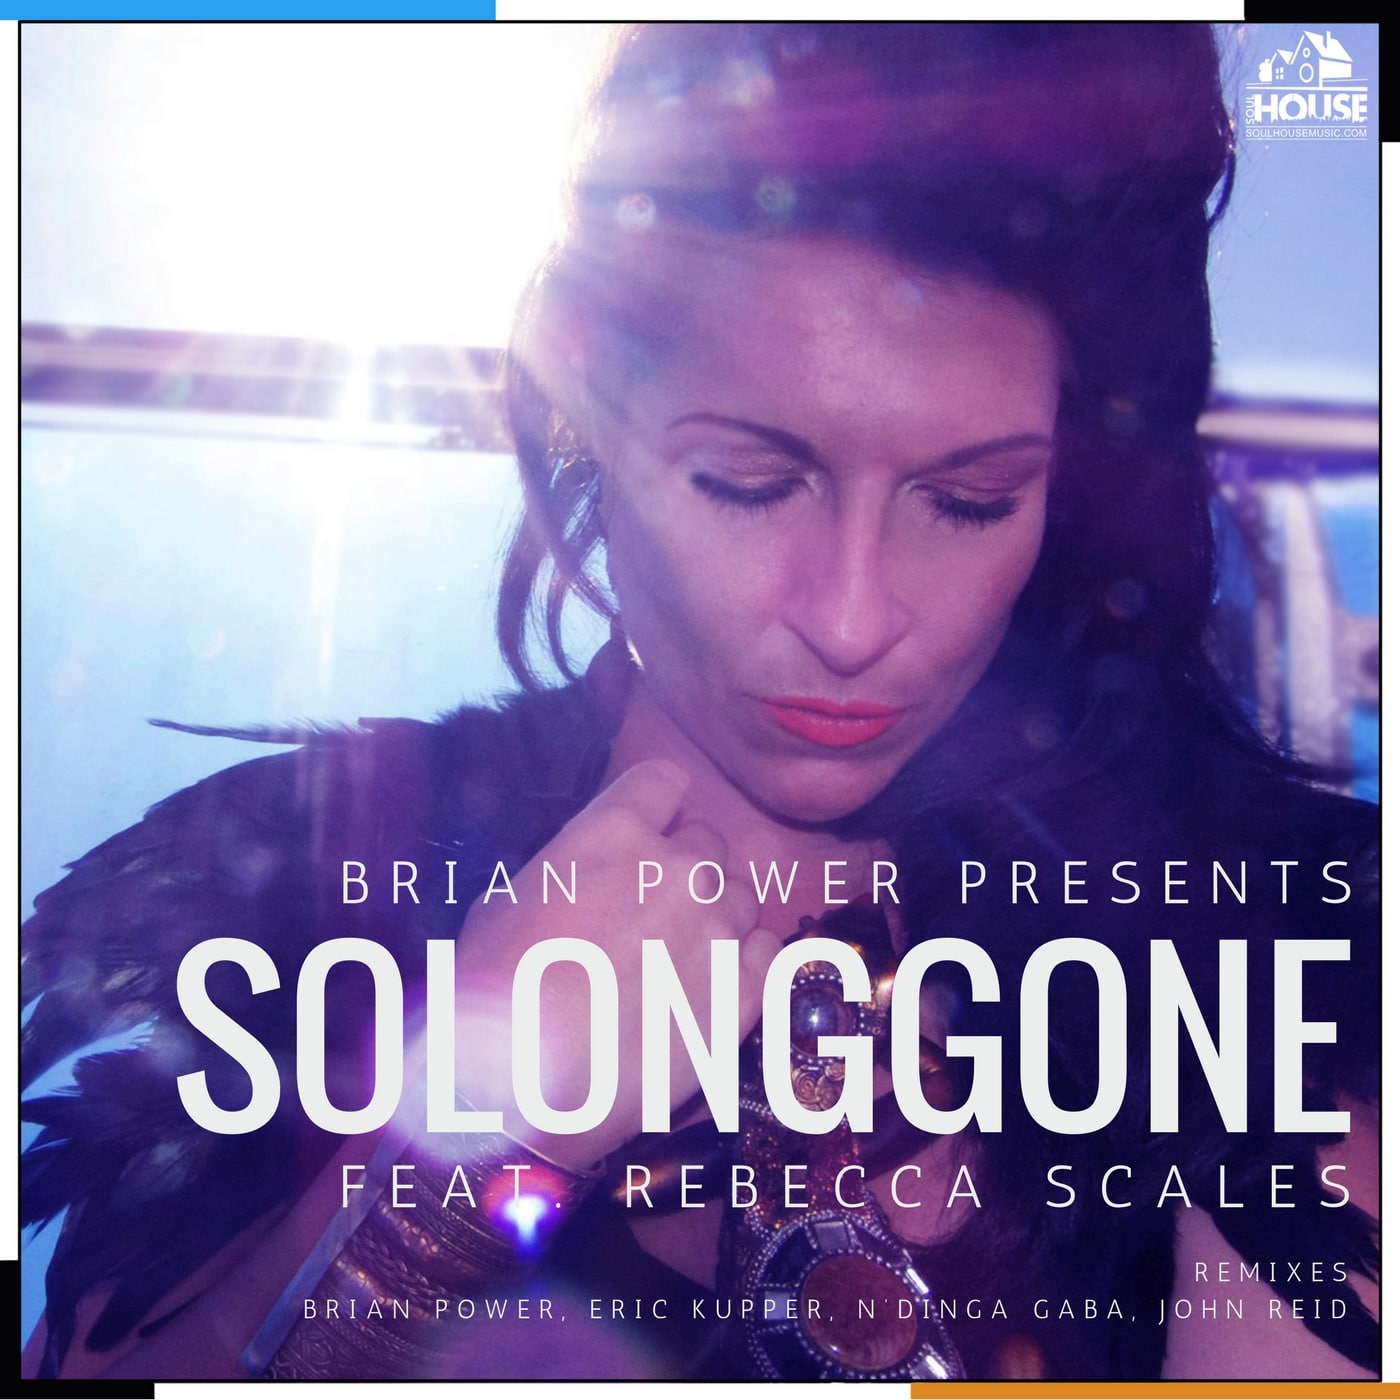 Brian Power Presents So Long Gone Featuring Rebecca Scales (Eric Kupper Mix)